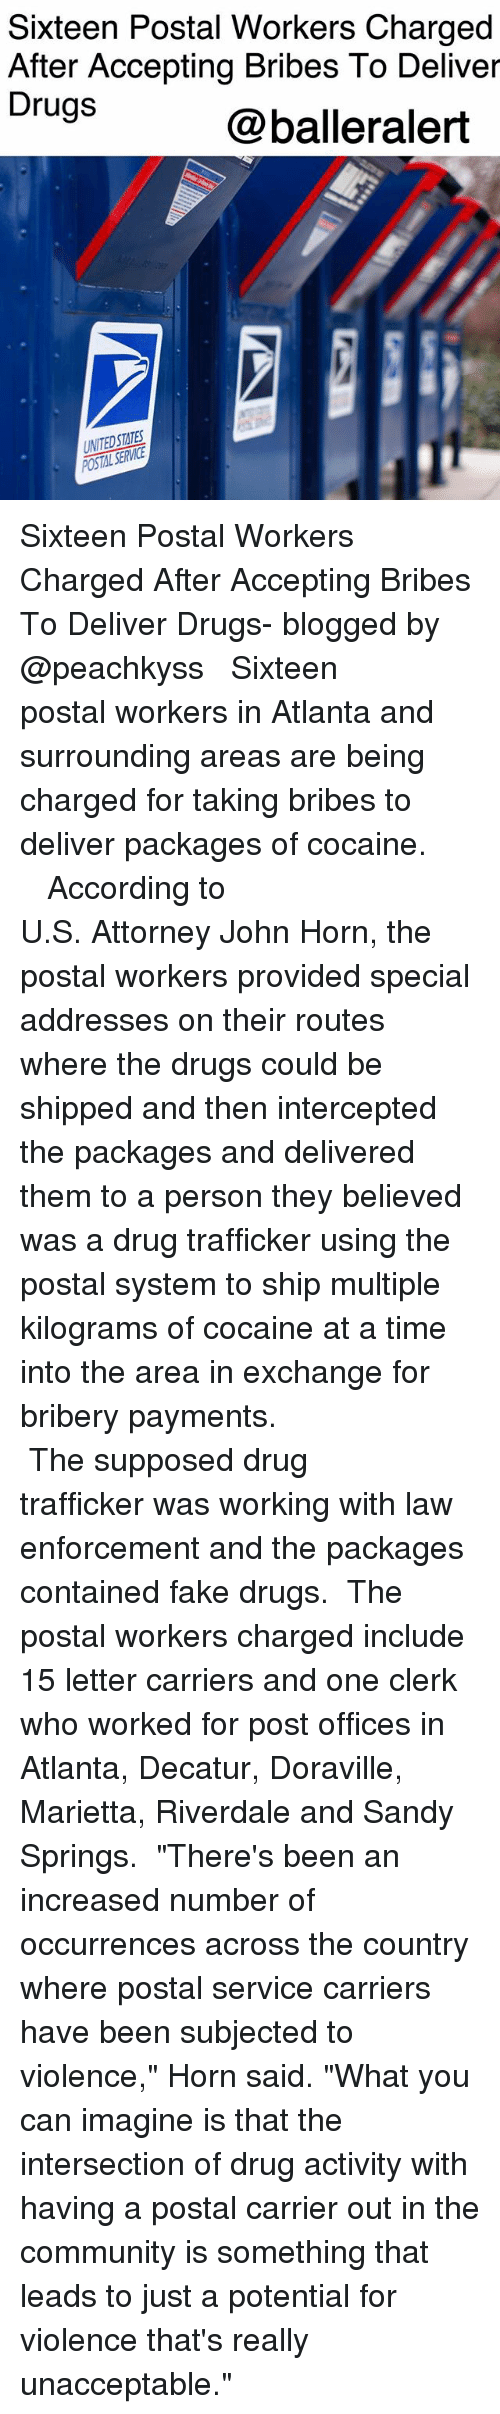 "Intercepted: Sixteen Postal Workers Charged  After Accepting Bribes To Deliver  Drugs  @balleralert  UNITEDSTATES Sixteen Postal Workers Charged After Accepting Bribes To Deliver Drugs- blogged by @peachkyss ⠀⠀⠀⠀⠀⠀⠀ ⠀⠀⠀⠀⠀⠀⠀ Sixteen postal workers in Atlanta and surrounding areas are being charged for taking bribes to deliver packages of cocaine. ⠀⠀⠀⠀⠀⠀⠀ ⠀⠀⠀⠀⠀⠀⠀ ⠀⠀⠀⠀⠀⠀⠀ According to U.S. Attorney John Horn, the postal workers provided special addresses on their routes where the drugs could be shipped and then intercepted the packages and delivered them to a person they believed was a drug trafficker using the postal system to ship multiple kilograms of cocaine at a time into the area in exchange for bribery payments. ⠀⠀⠀⠀⠀⠀⠀ ⠀⠀⠀⠀⠀⠀⠀ ⠀⠀⠀⠀⠀⠀⠀ The supposed drug trafficker was working with law enforcement and the packages contained fake drugs. ⠀⠀⠀⠀⠀⠀⠀ The postal workers charged include 15 letter carriers and one clerk who worked for post offices in Atlanta, Decatur, Doraville, Marietta, Riverdale and Sandy Springs. ⠀⠀⠀⠀⠀⠀⠀ ""There's been an increased number of occurrences across the country where postal service carriers have been subjected to violence,"" Horn said. ""What you can imagine is that the intersection of drug activity with having a postal carrier out in the community is something that leads to just a potential for violence that's really unacceptable."""